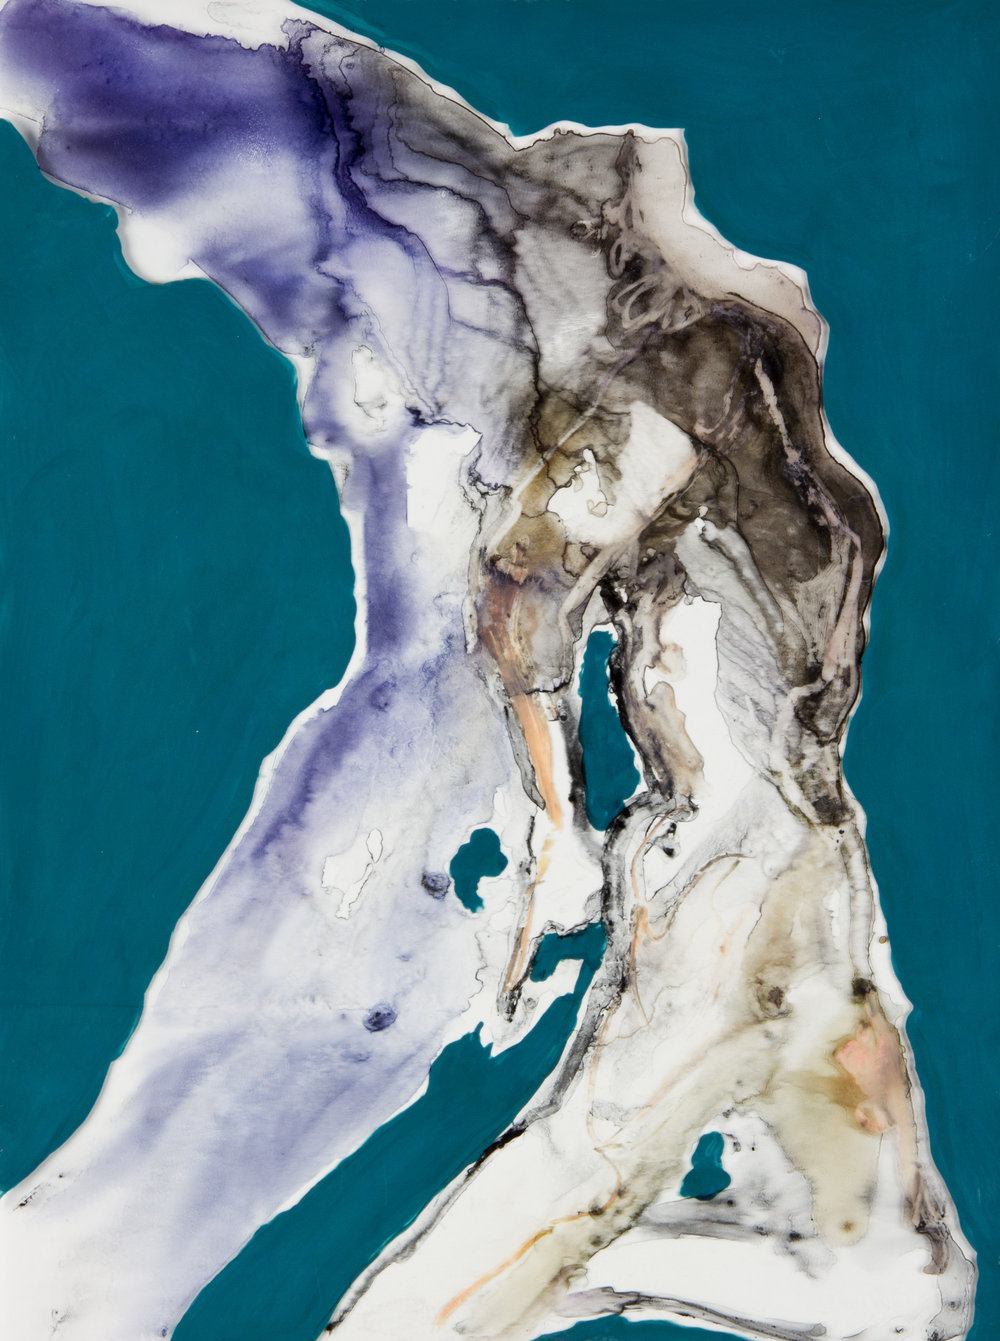 Pillar of Salt, 2014, watercolor and acrylic on mylar on panel, 9x12 inches